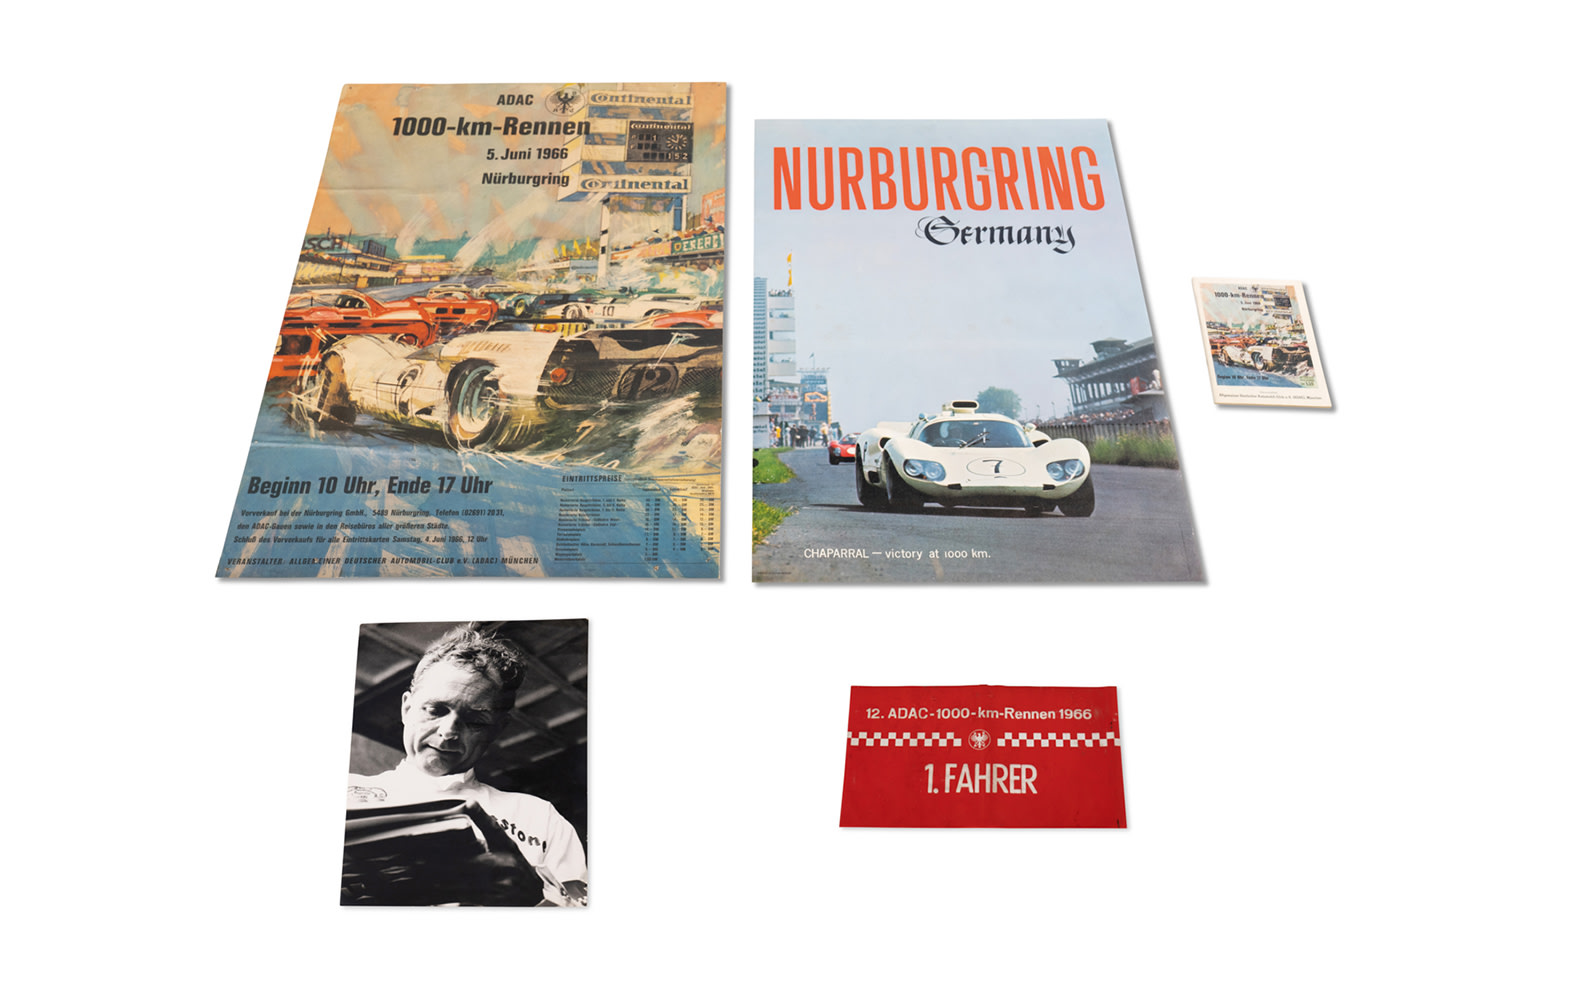 Significant Items from Phil Hill's Victory in a Chaparral at the 1966 ADAC 1000 Km Nürburgring